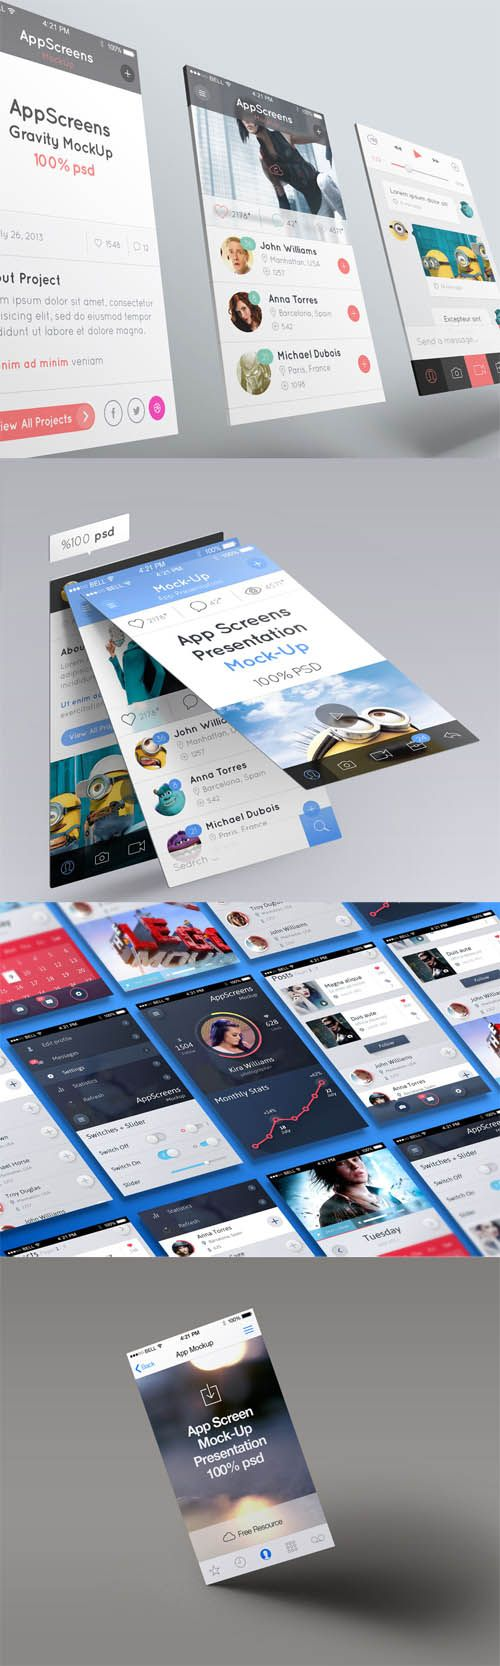 4 App Screen Presentation Mock-up Templates » Free Hero Graphic Design: Vectors AEP Projects PSD Sources Web Templates – HeroGFX.com